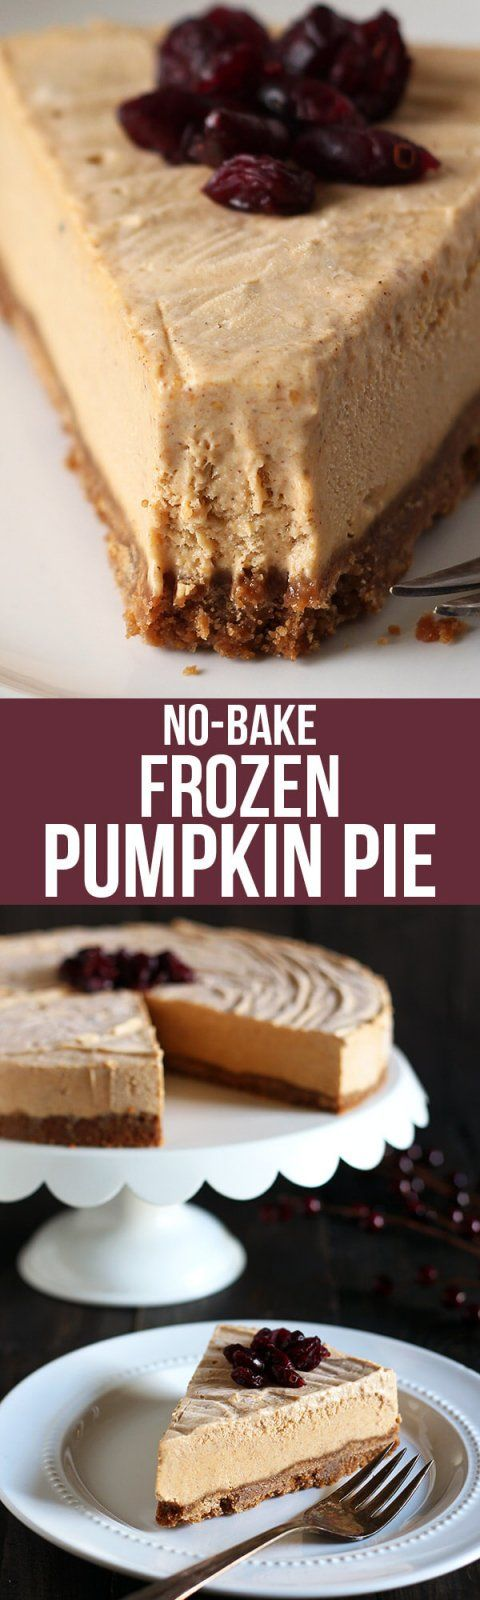 One of the easiest pies ever! This no-bake Frozen Pumpkin Pie is the perfect fall recipe for mild weather, or for when there's no more room in the oven!